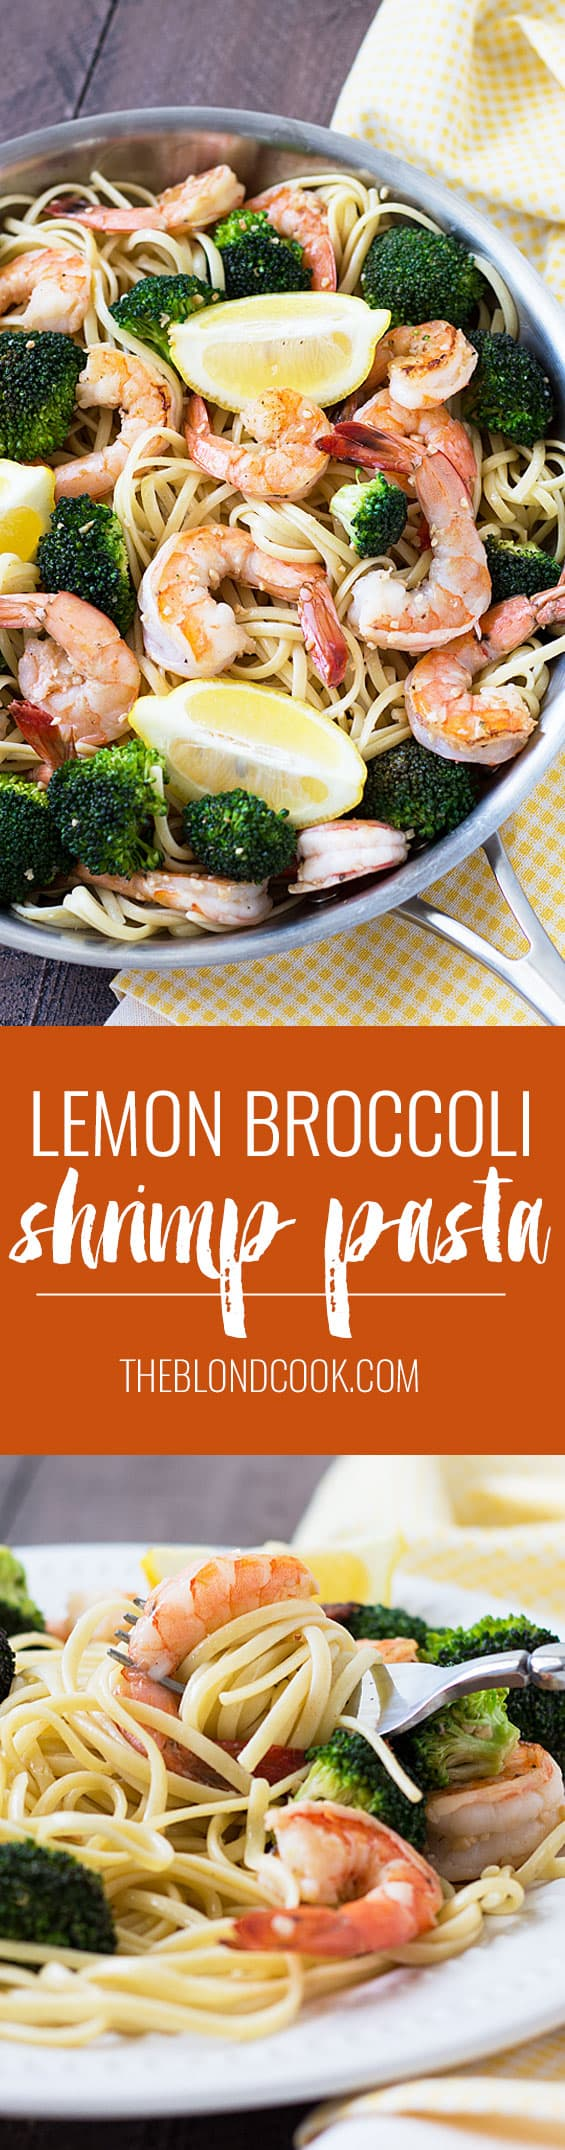 Lemon Broccoli Shrimp Pasta - An easy, light and flavorful shrimp dish that's perfect any night of the week!